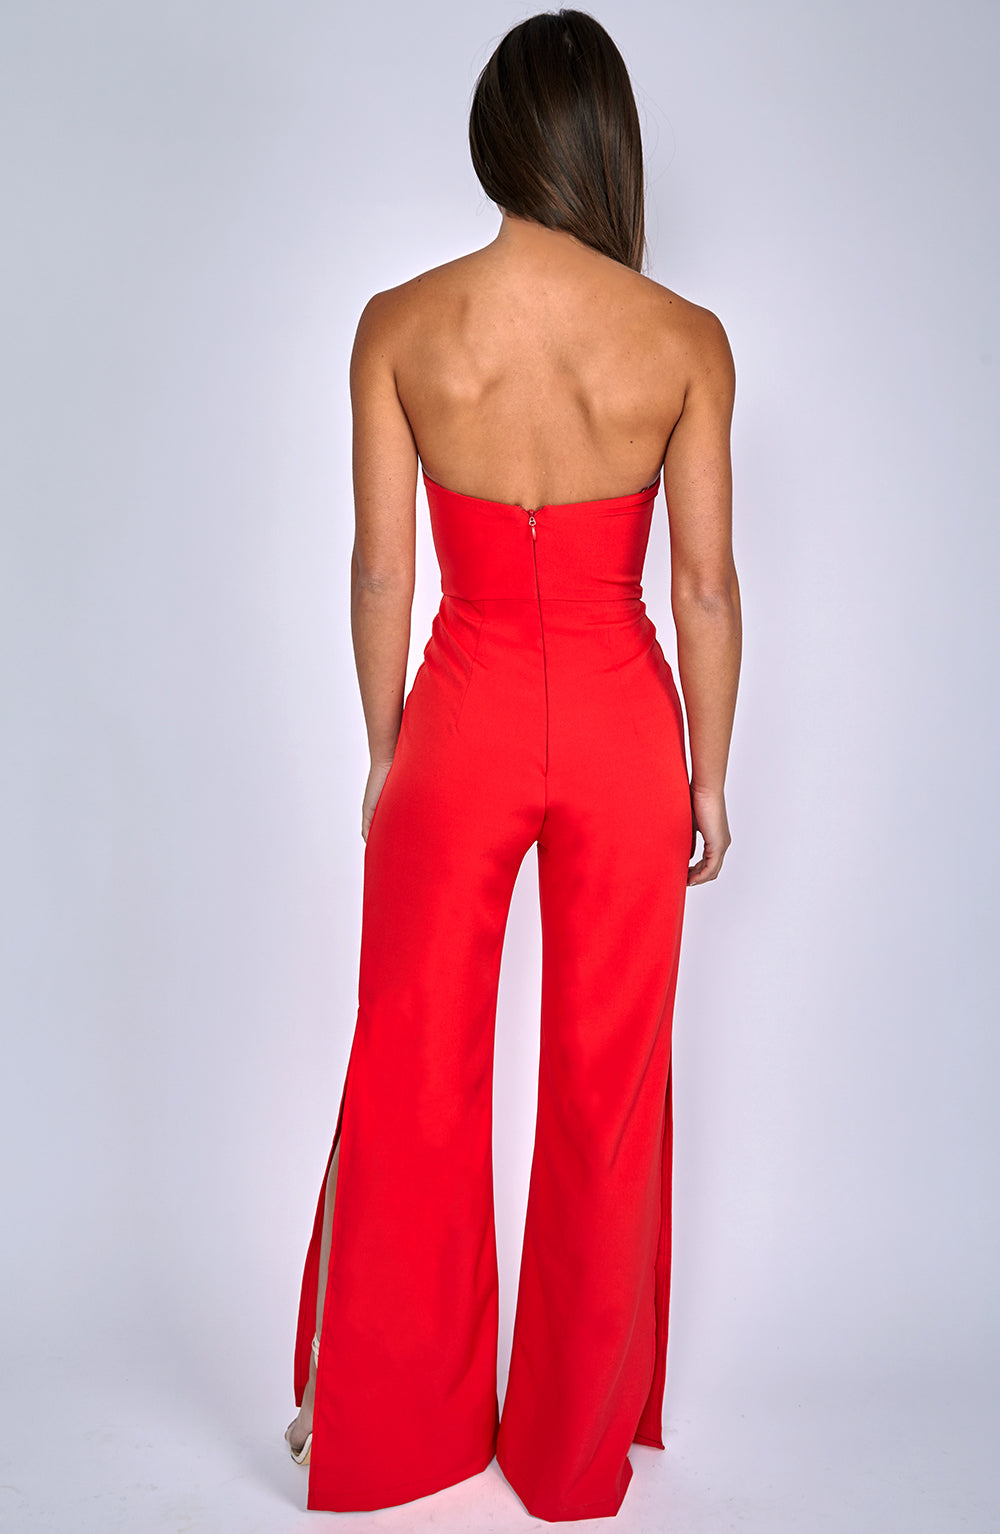 Rebel Heart Jumpsuit - Red